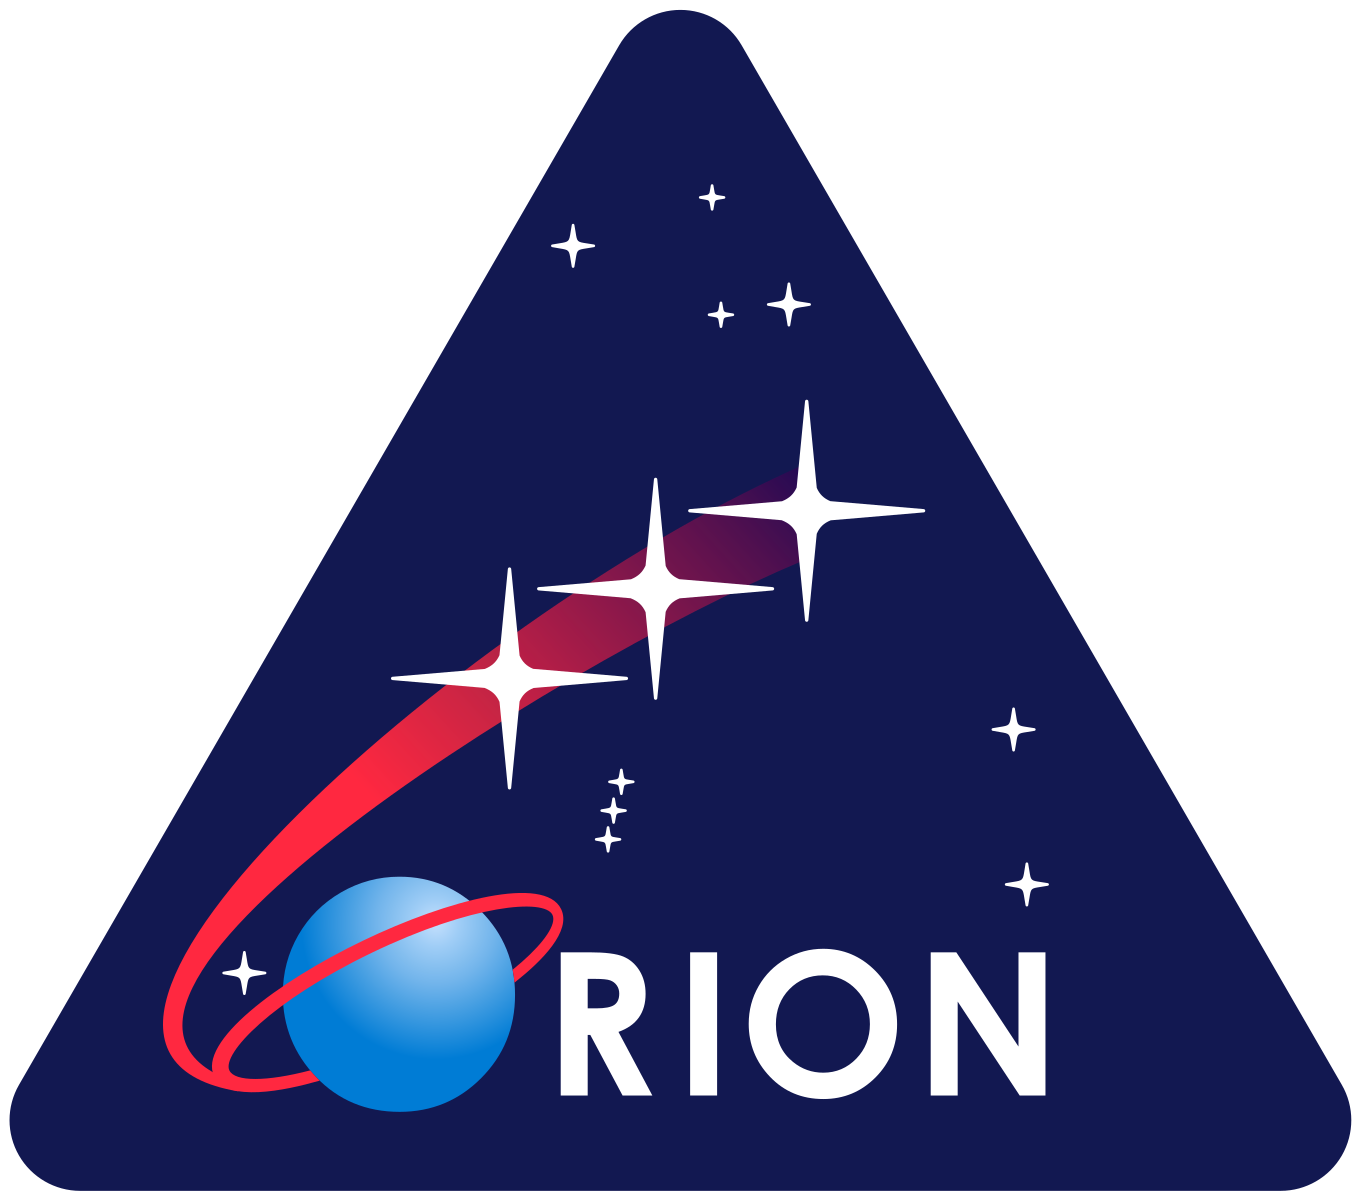 Orion_Isologotype